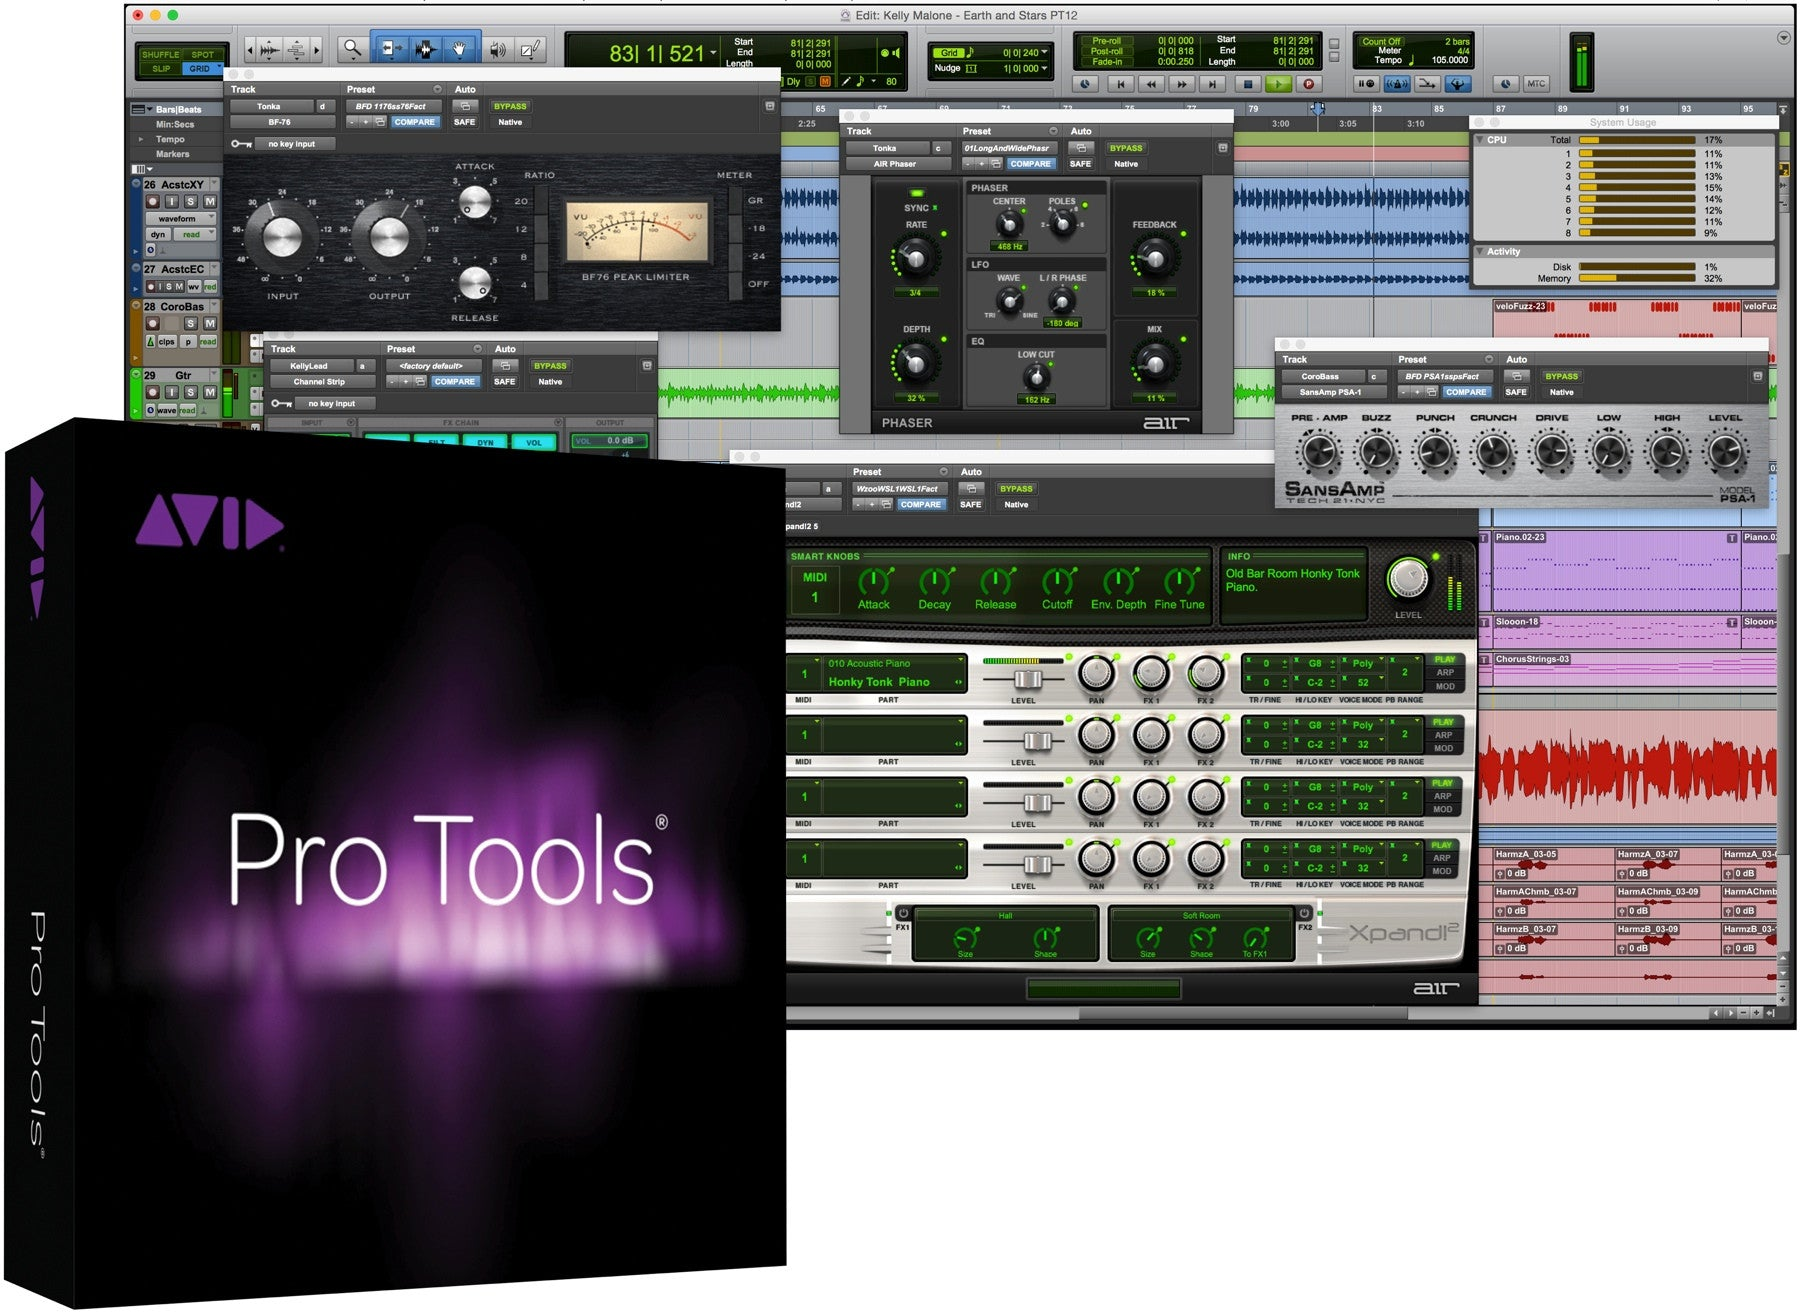 Avid | Pro Tools 2018 with Annual Upgrade and Support Plan